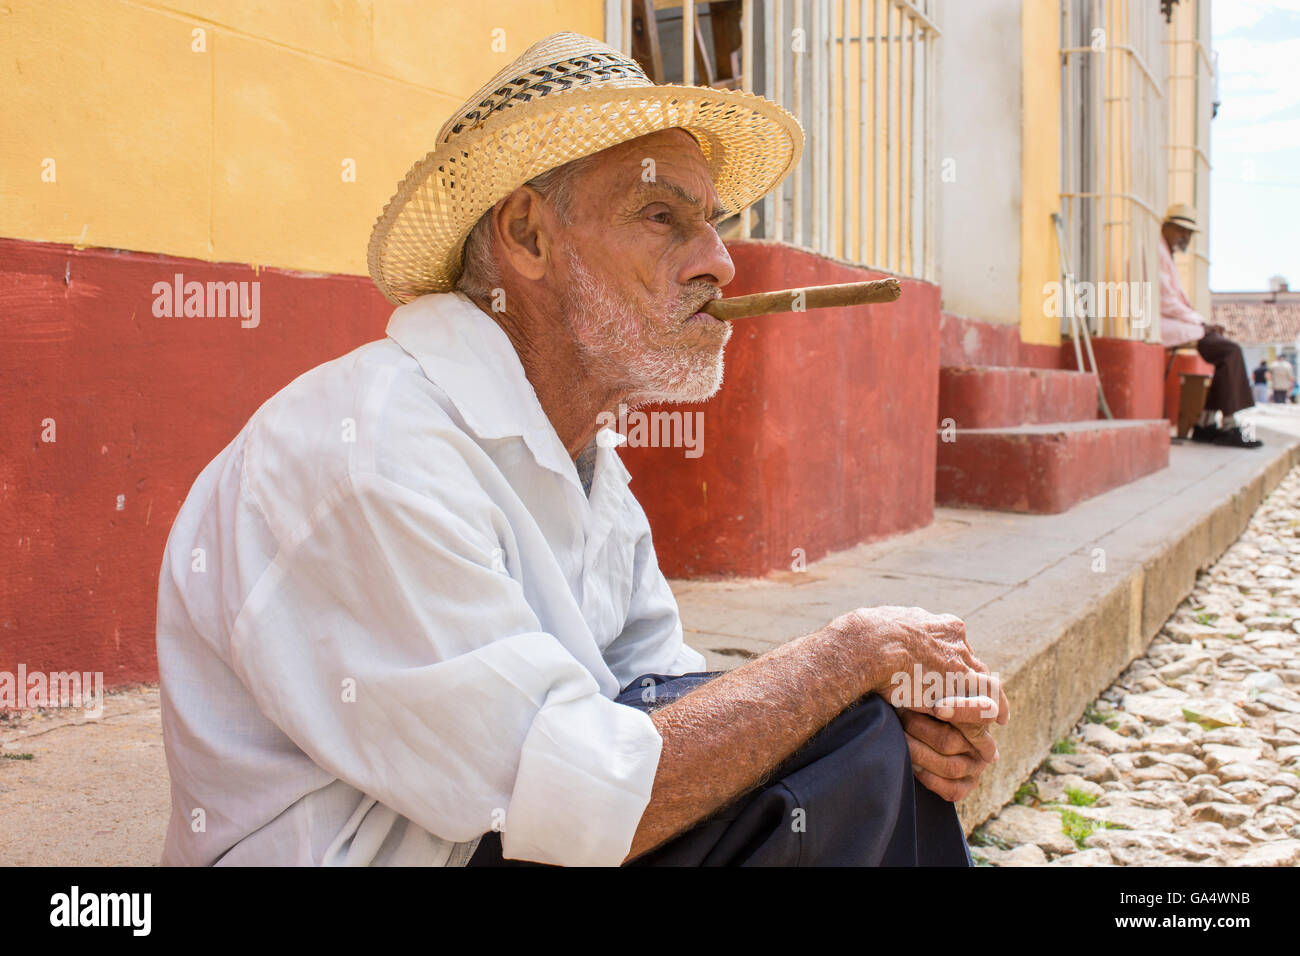 Dans l'homme Local hat avec cigare assis sur un trottoir sur la Plaza Major, Trinidad, Cuba Photo Stock